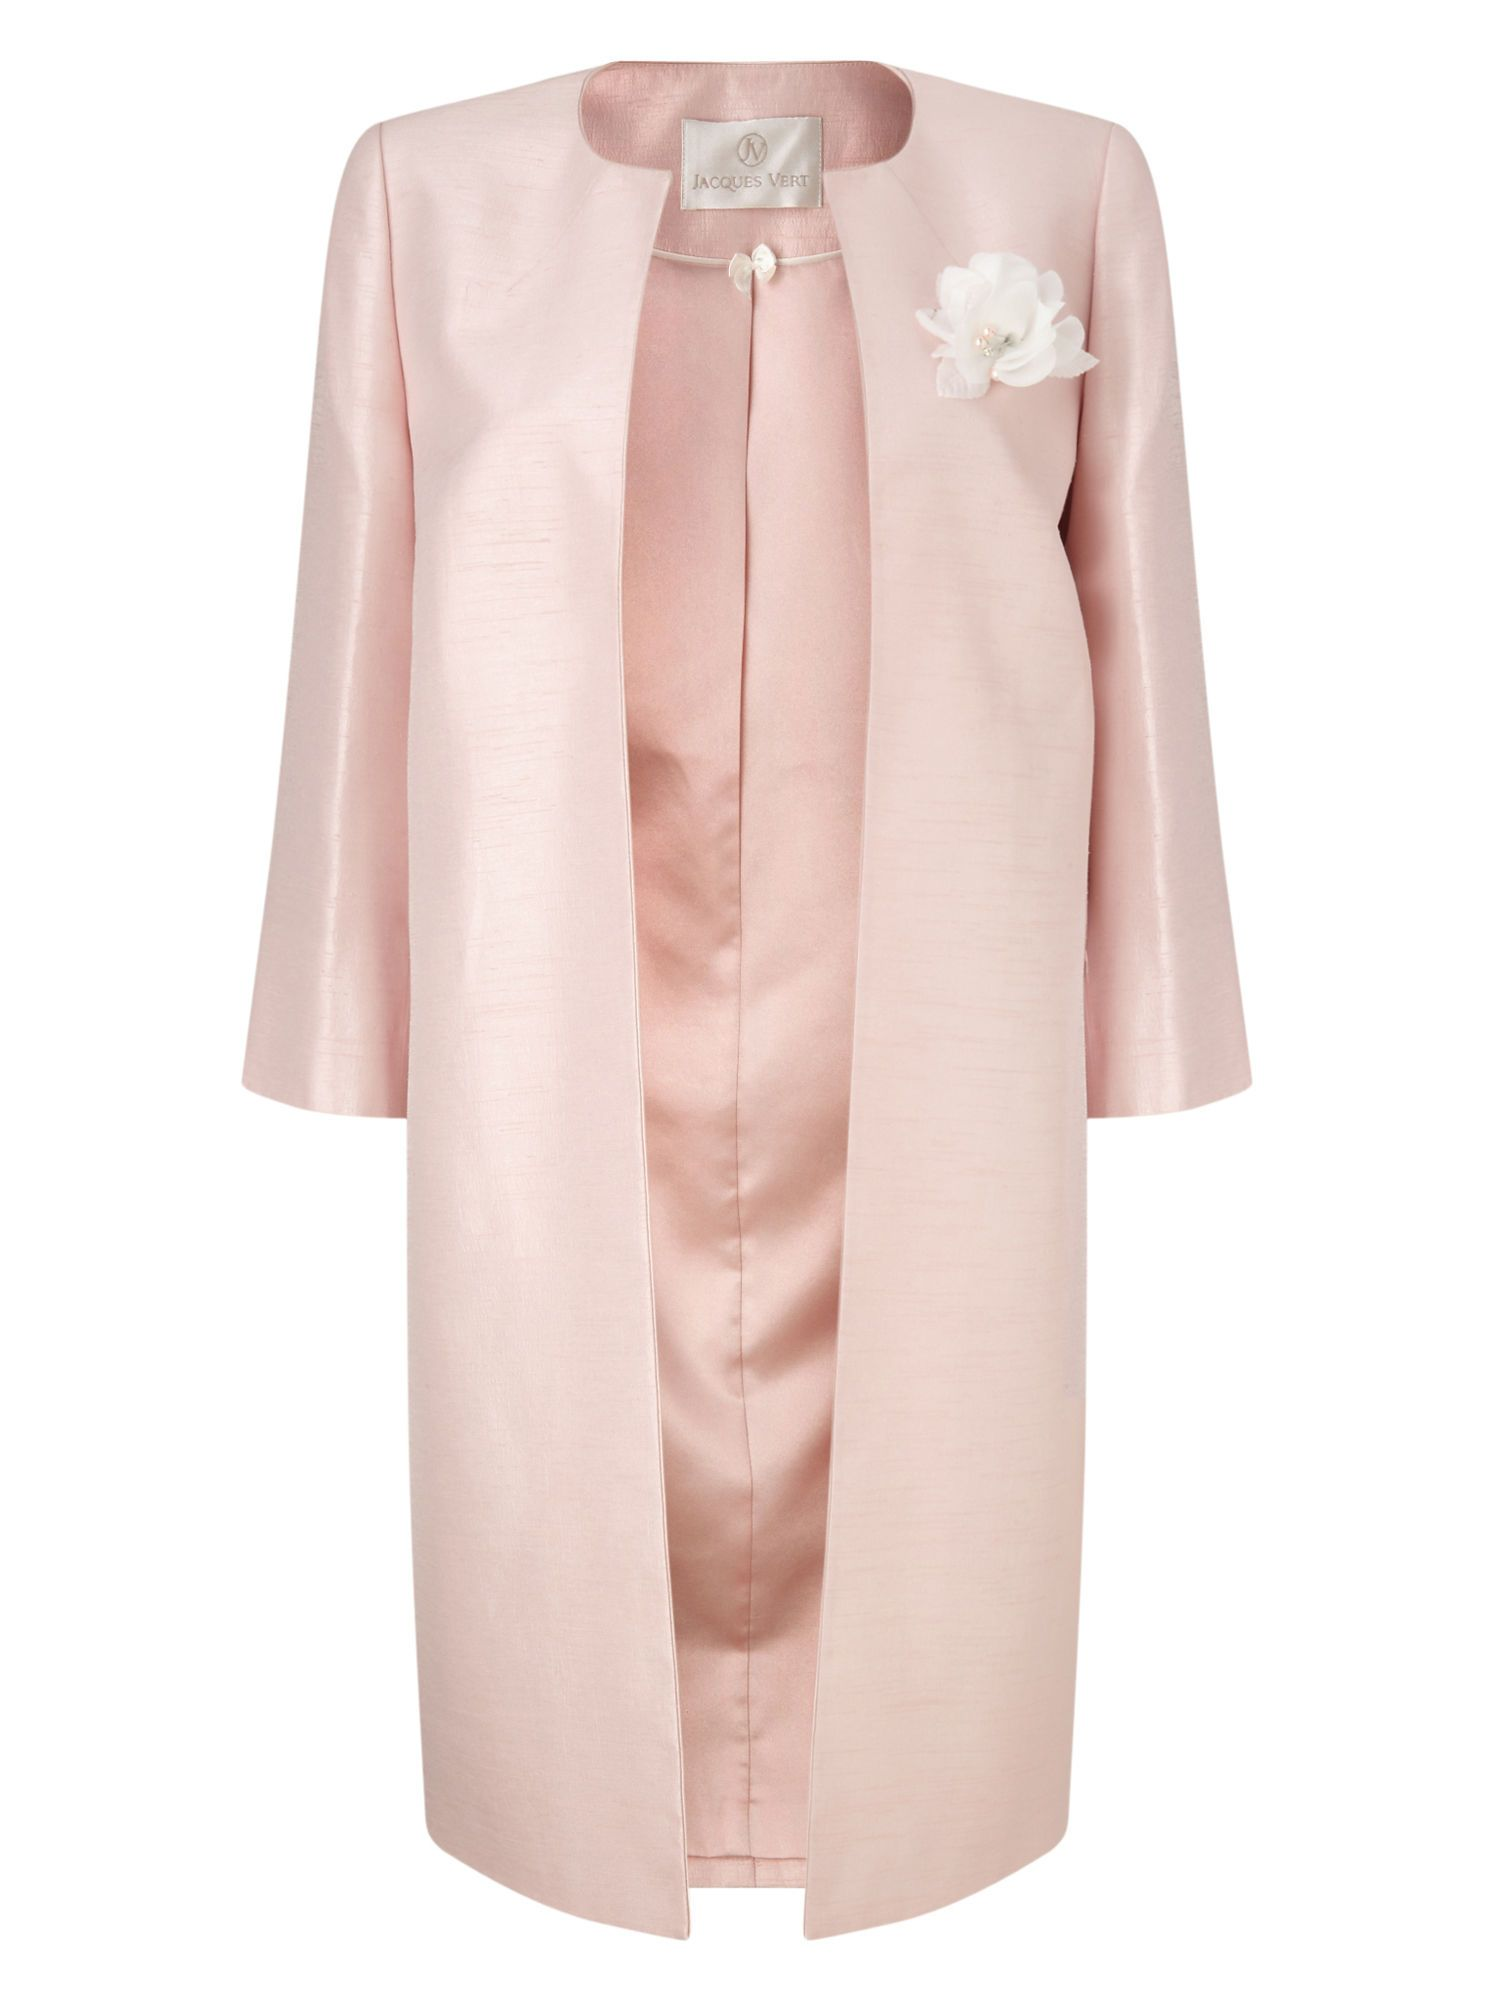 Jacques Vert pink occasion coat with corsage. New frock coats and ...